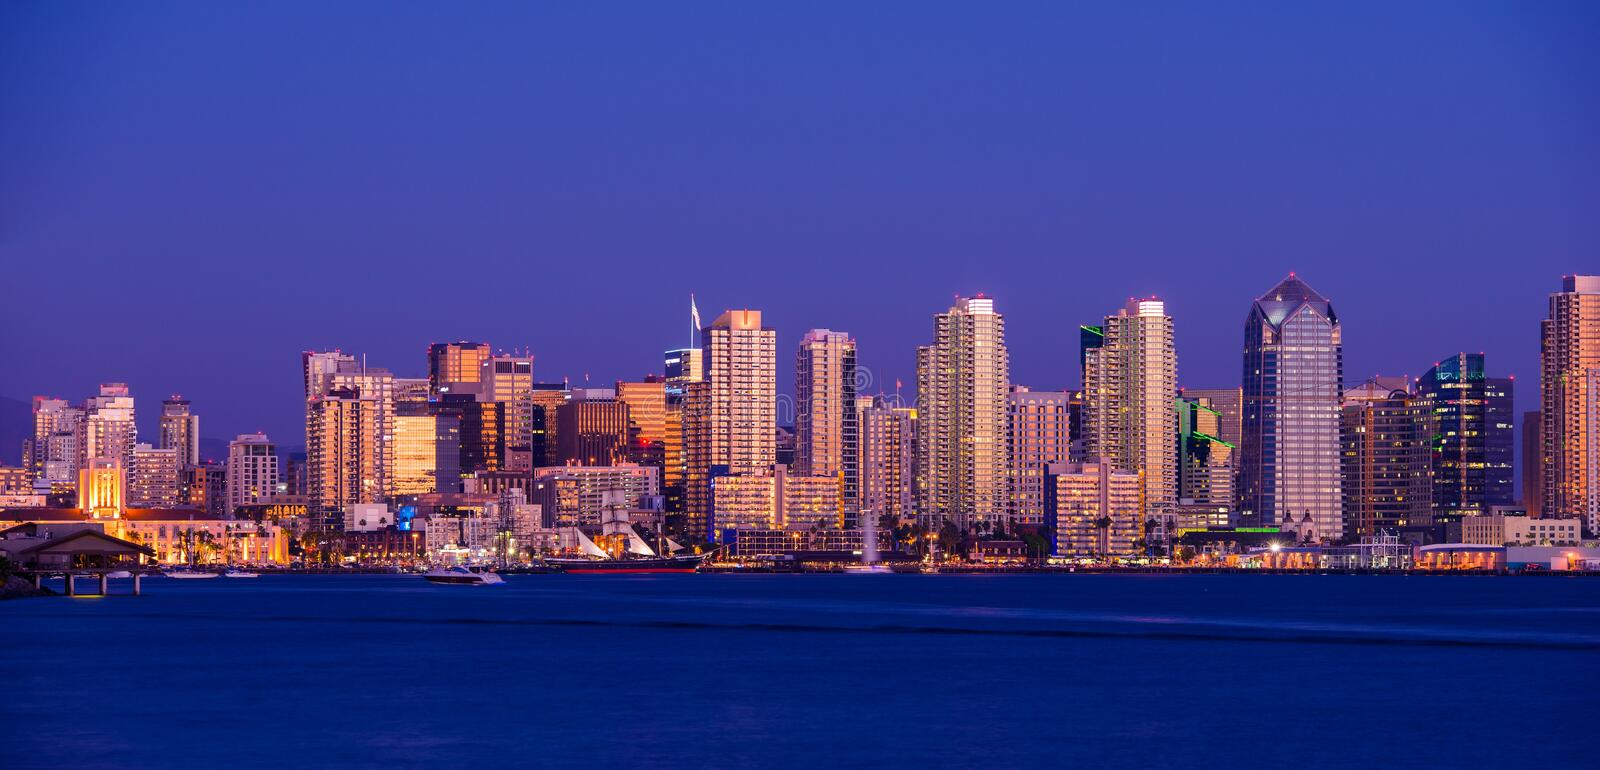 Colorful San Diego Downton. San Diego Skyline Panorama Photo After Dark royalty free stock images